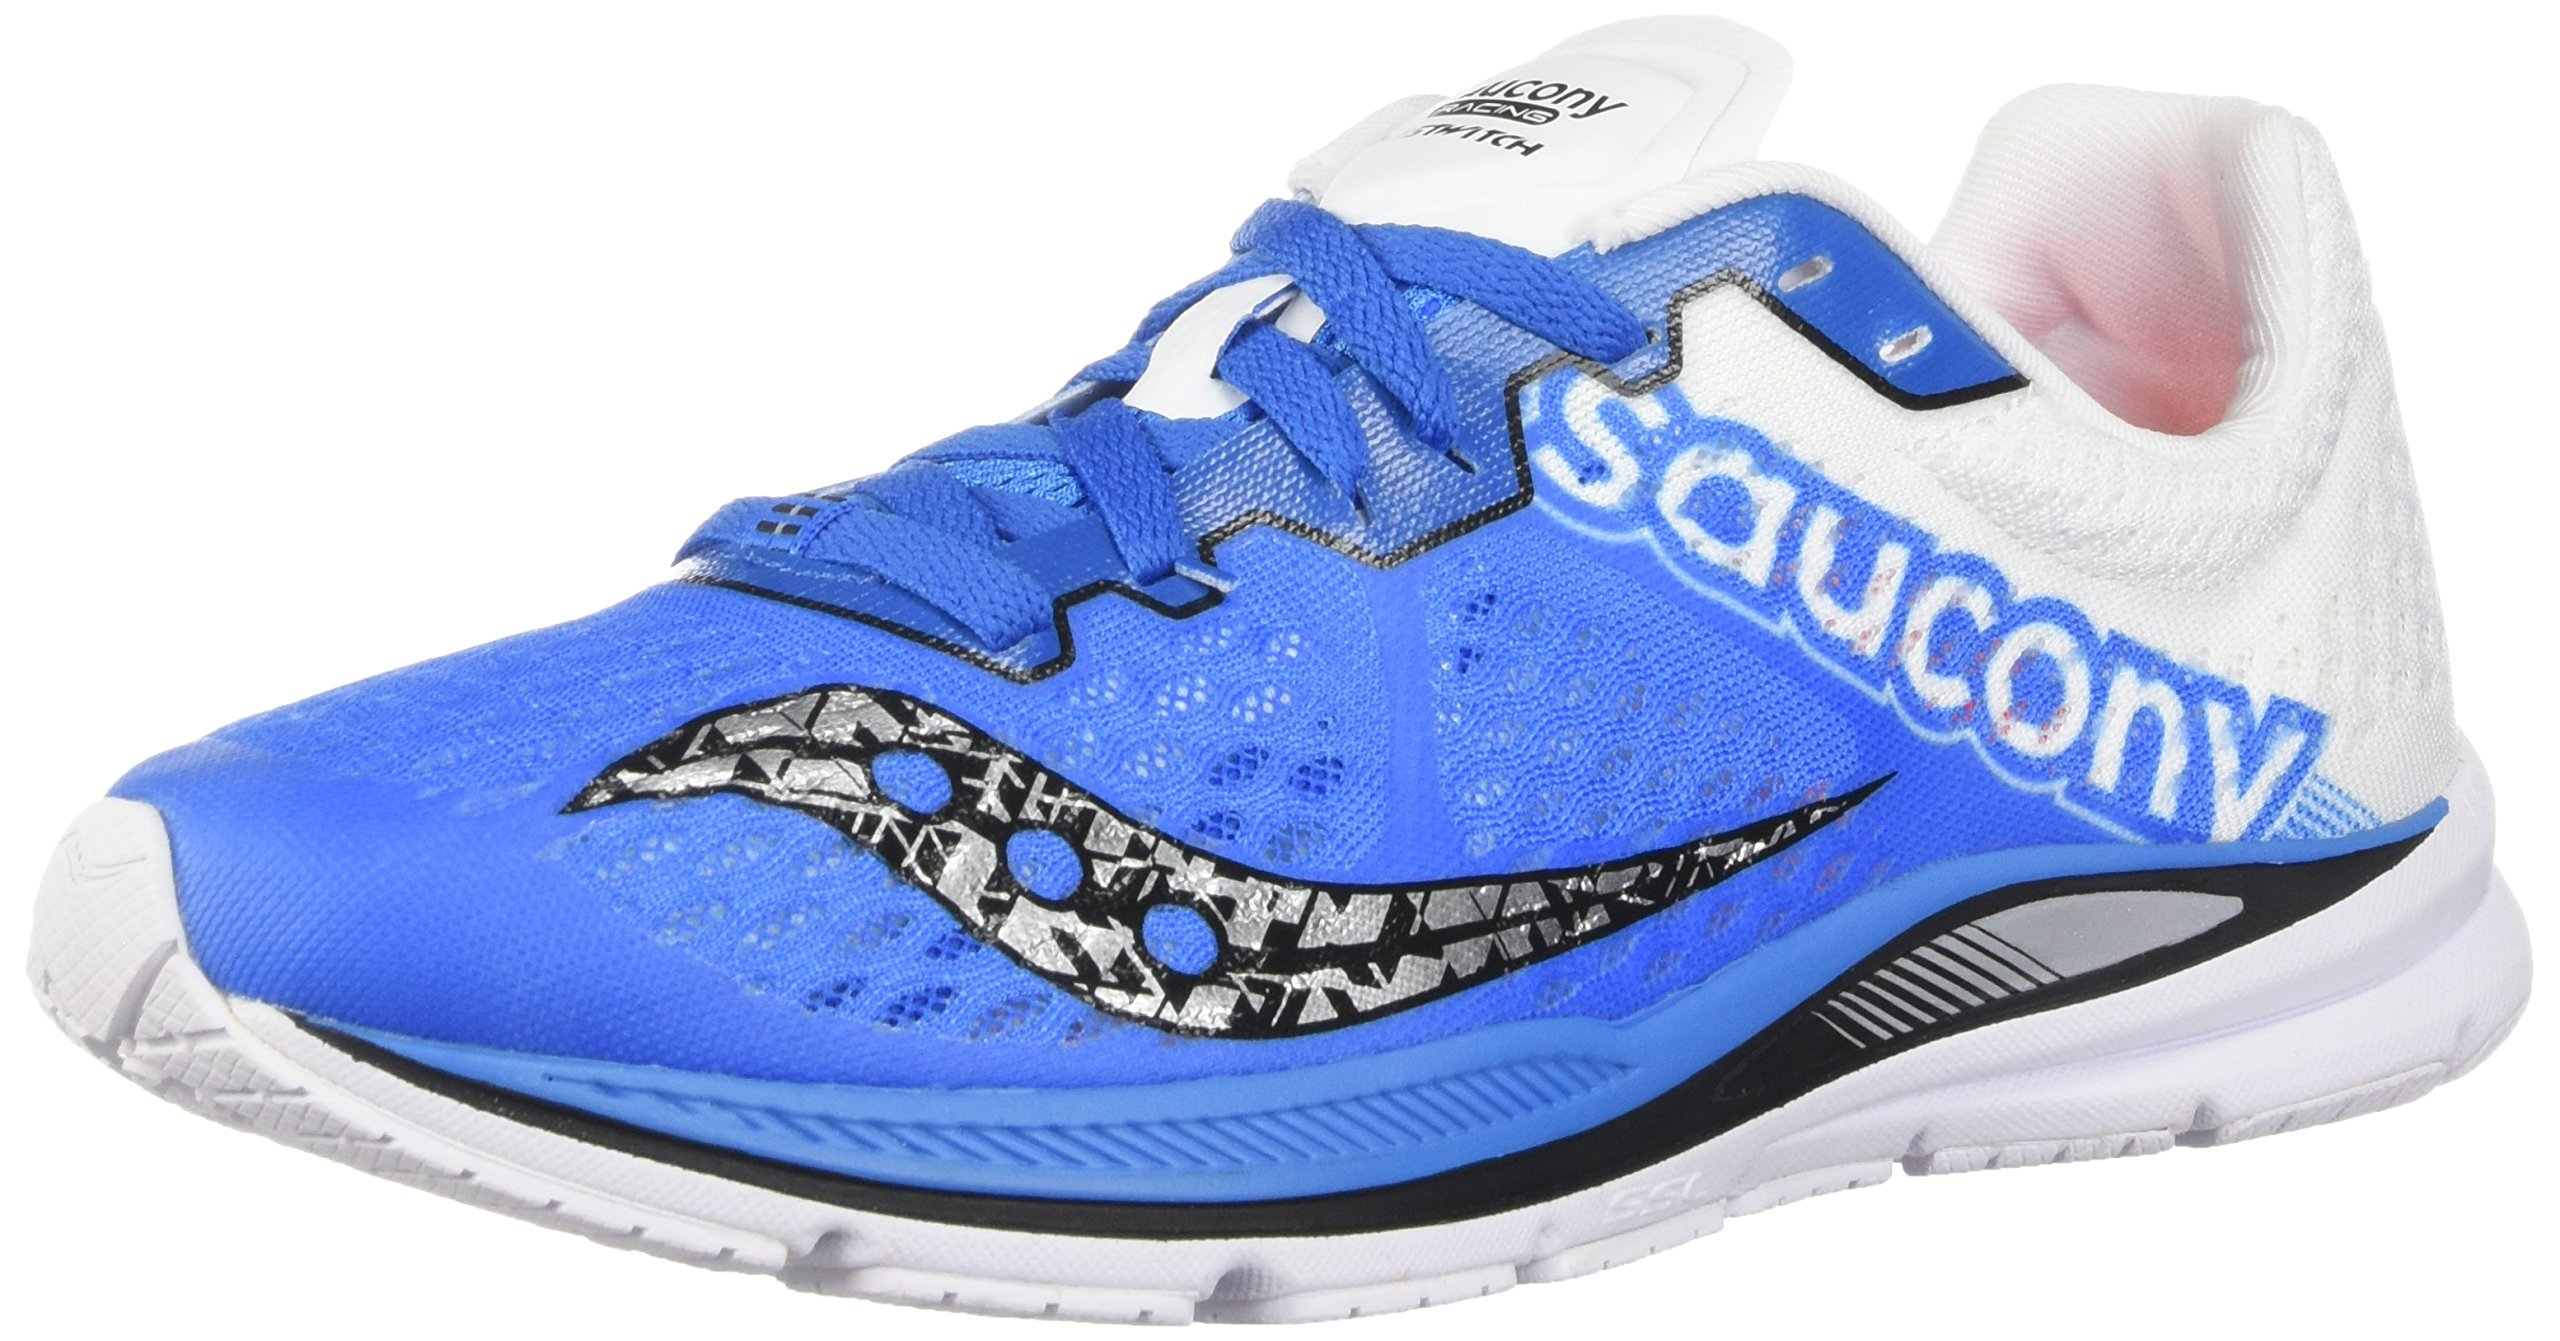 Saucony Men's Fastwitch 8 Cross Country Running Shoe, Blue/White, 7 Medium US by Saucony